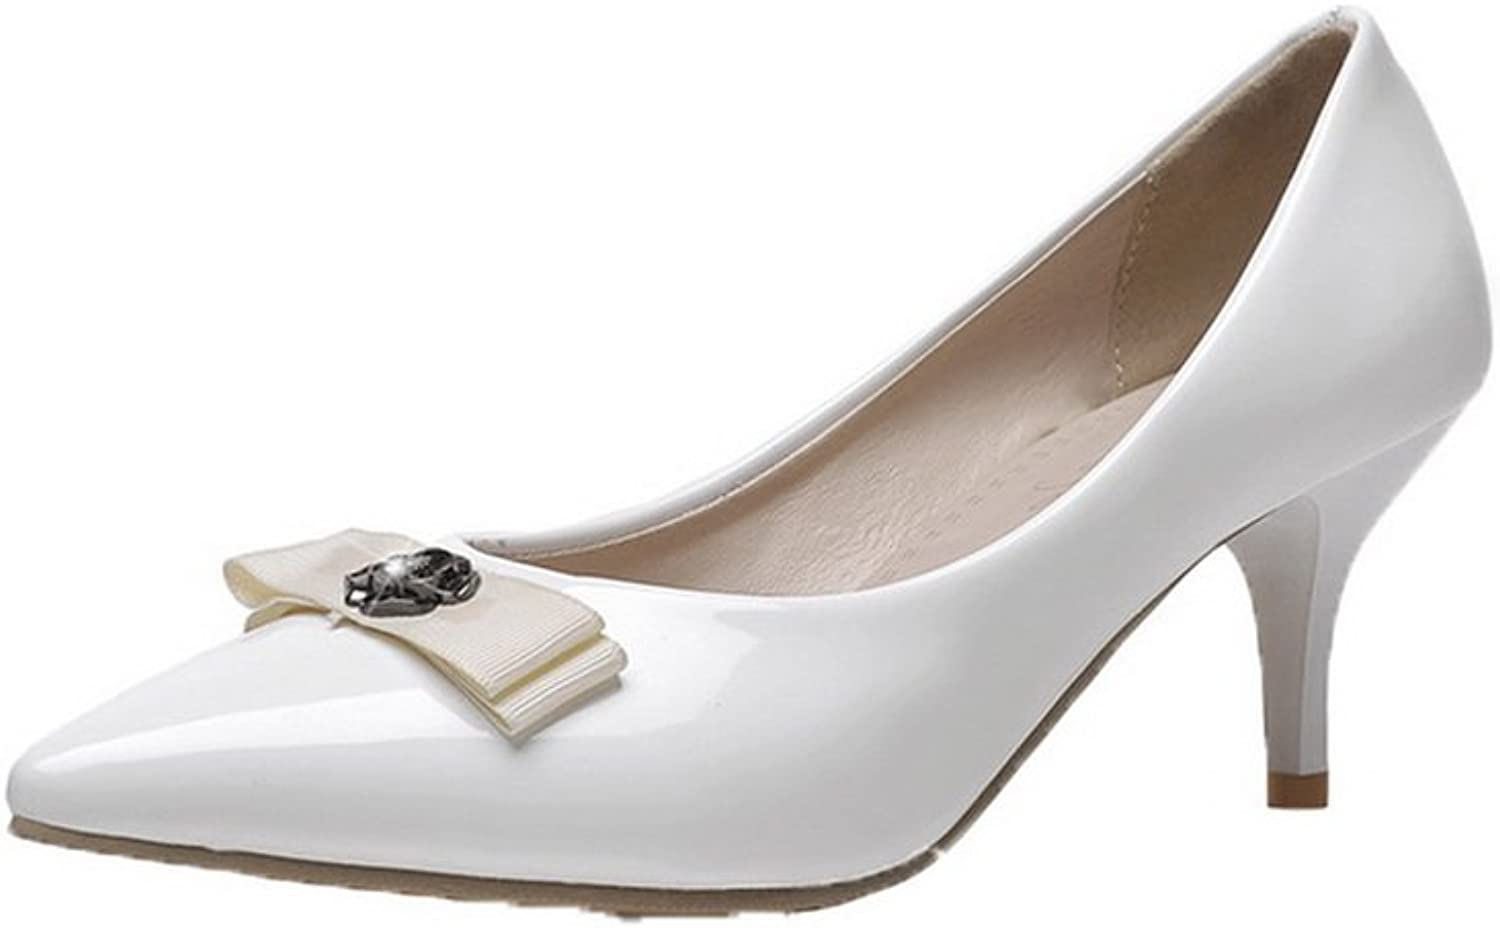 AmoonyFashion Women's Pull-On Closed-Toe Kitten-Heels PU Solid Pumps-shoes, White, 37